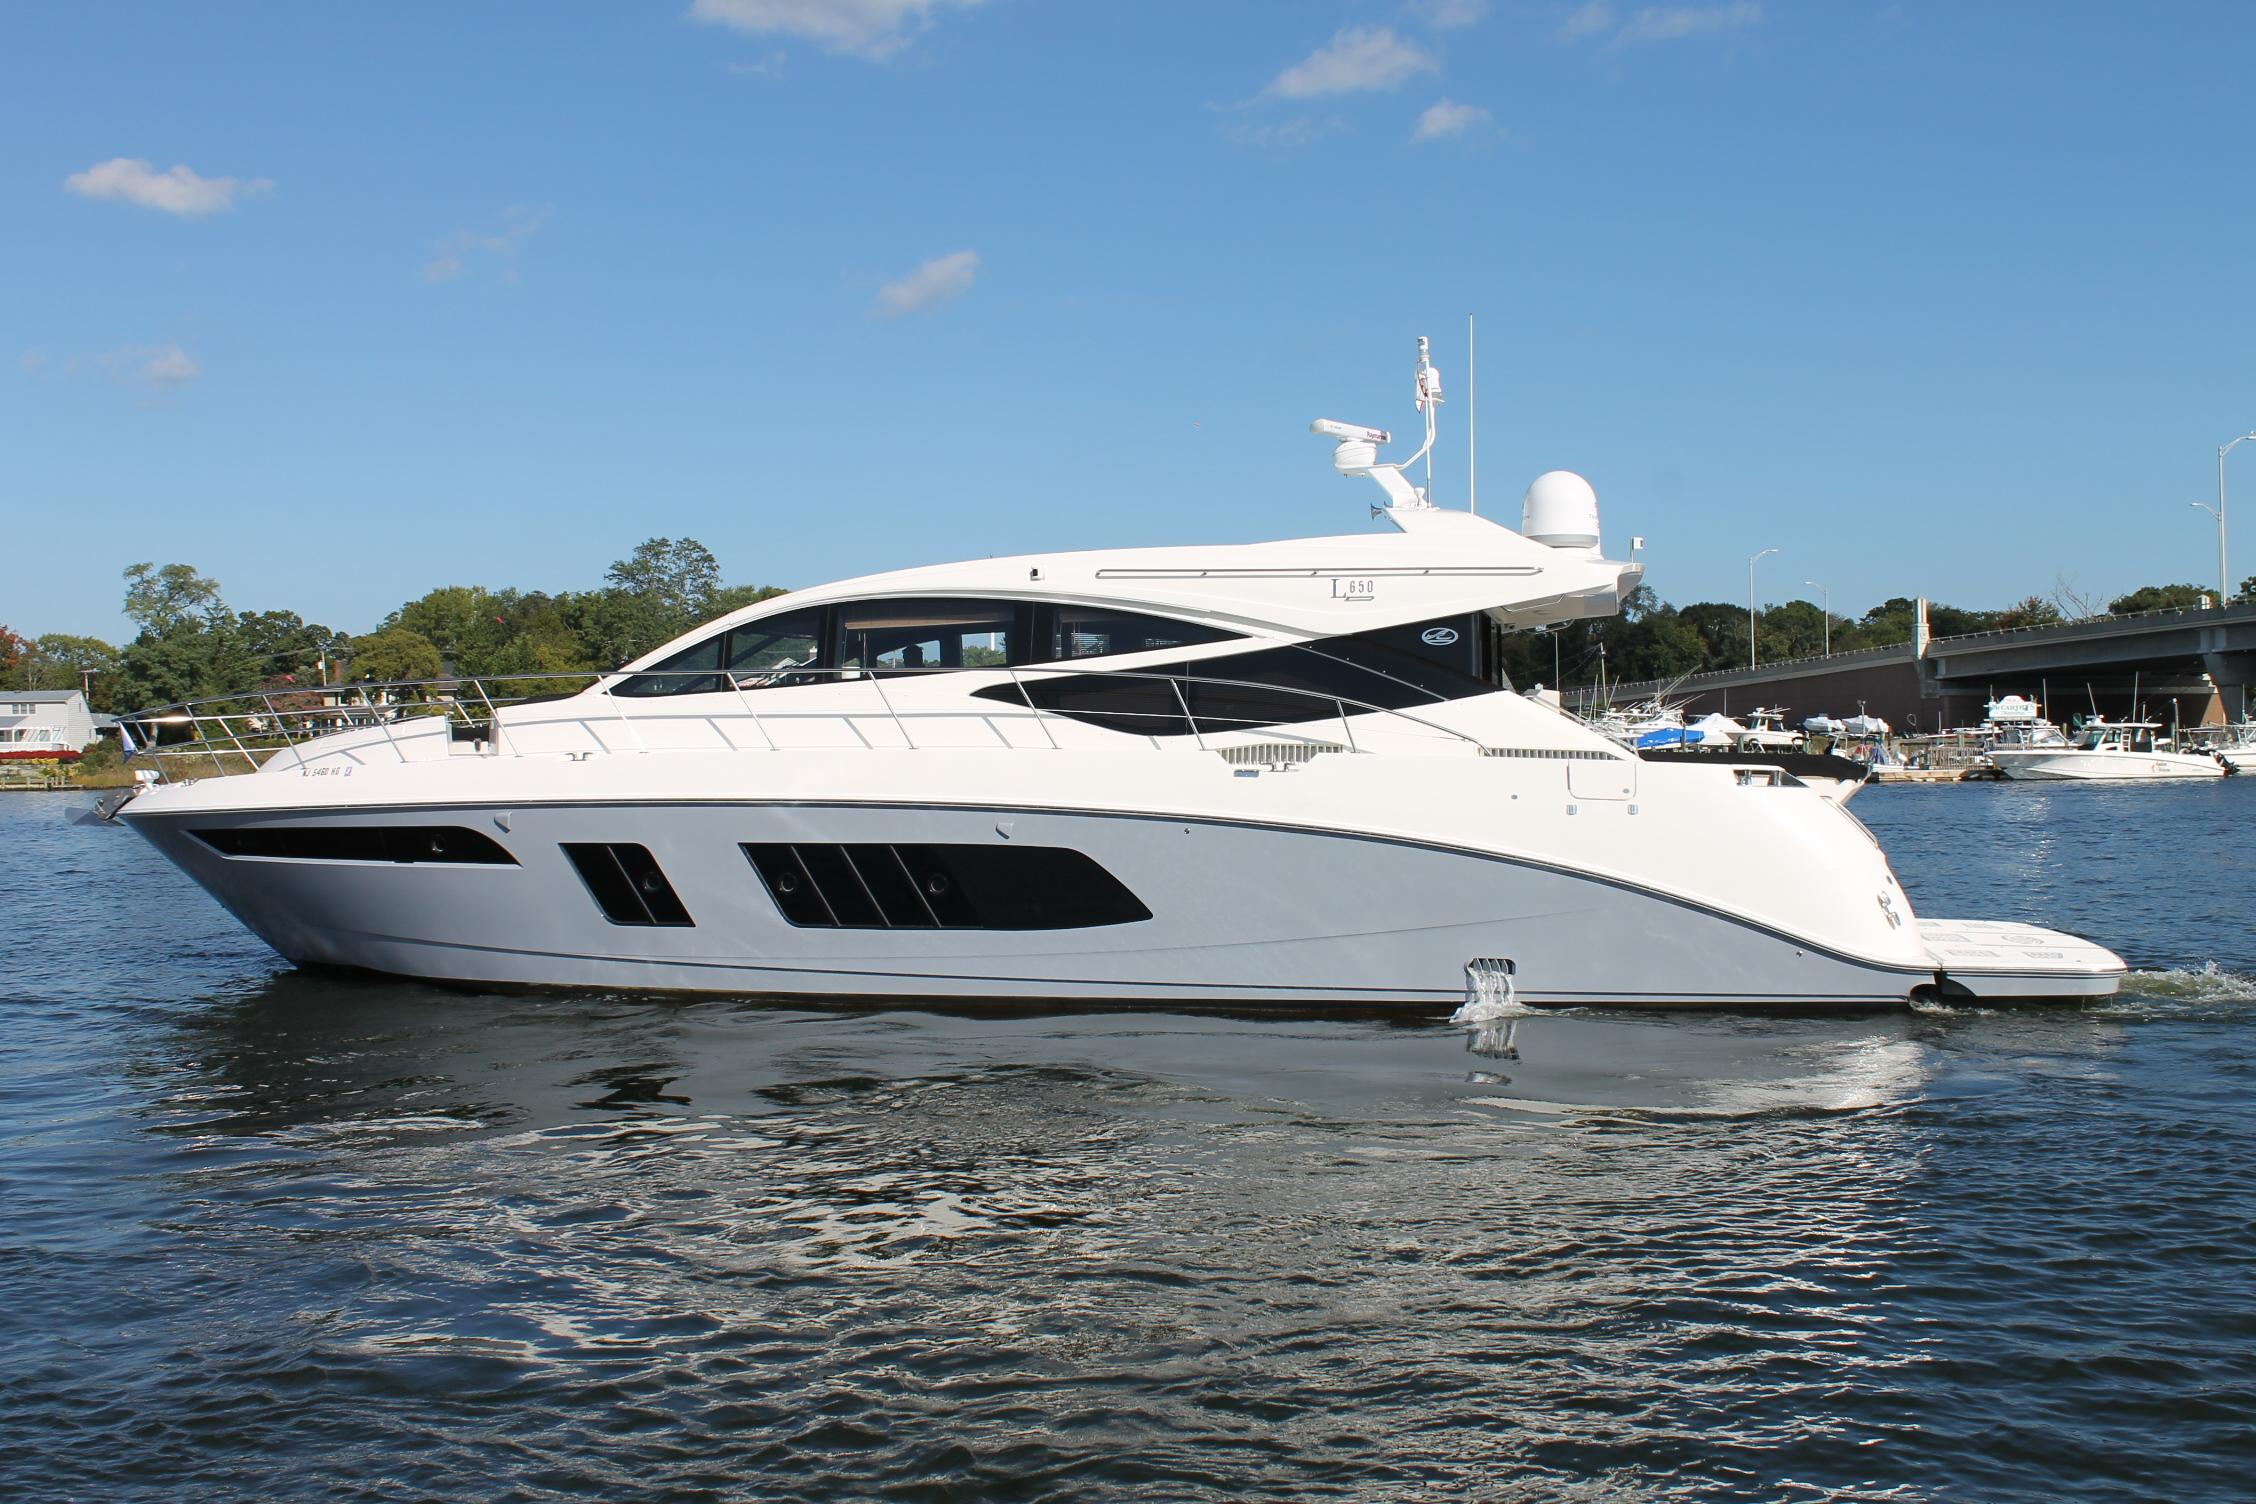 65 sea ray 2015 speracura iii for sale in brick new for Sea ray motor yacht for sale